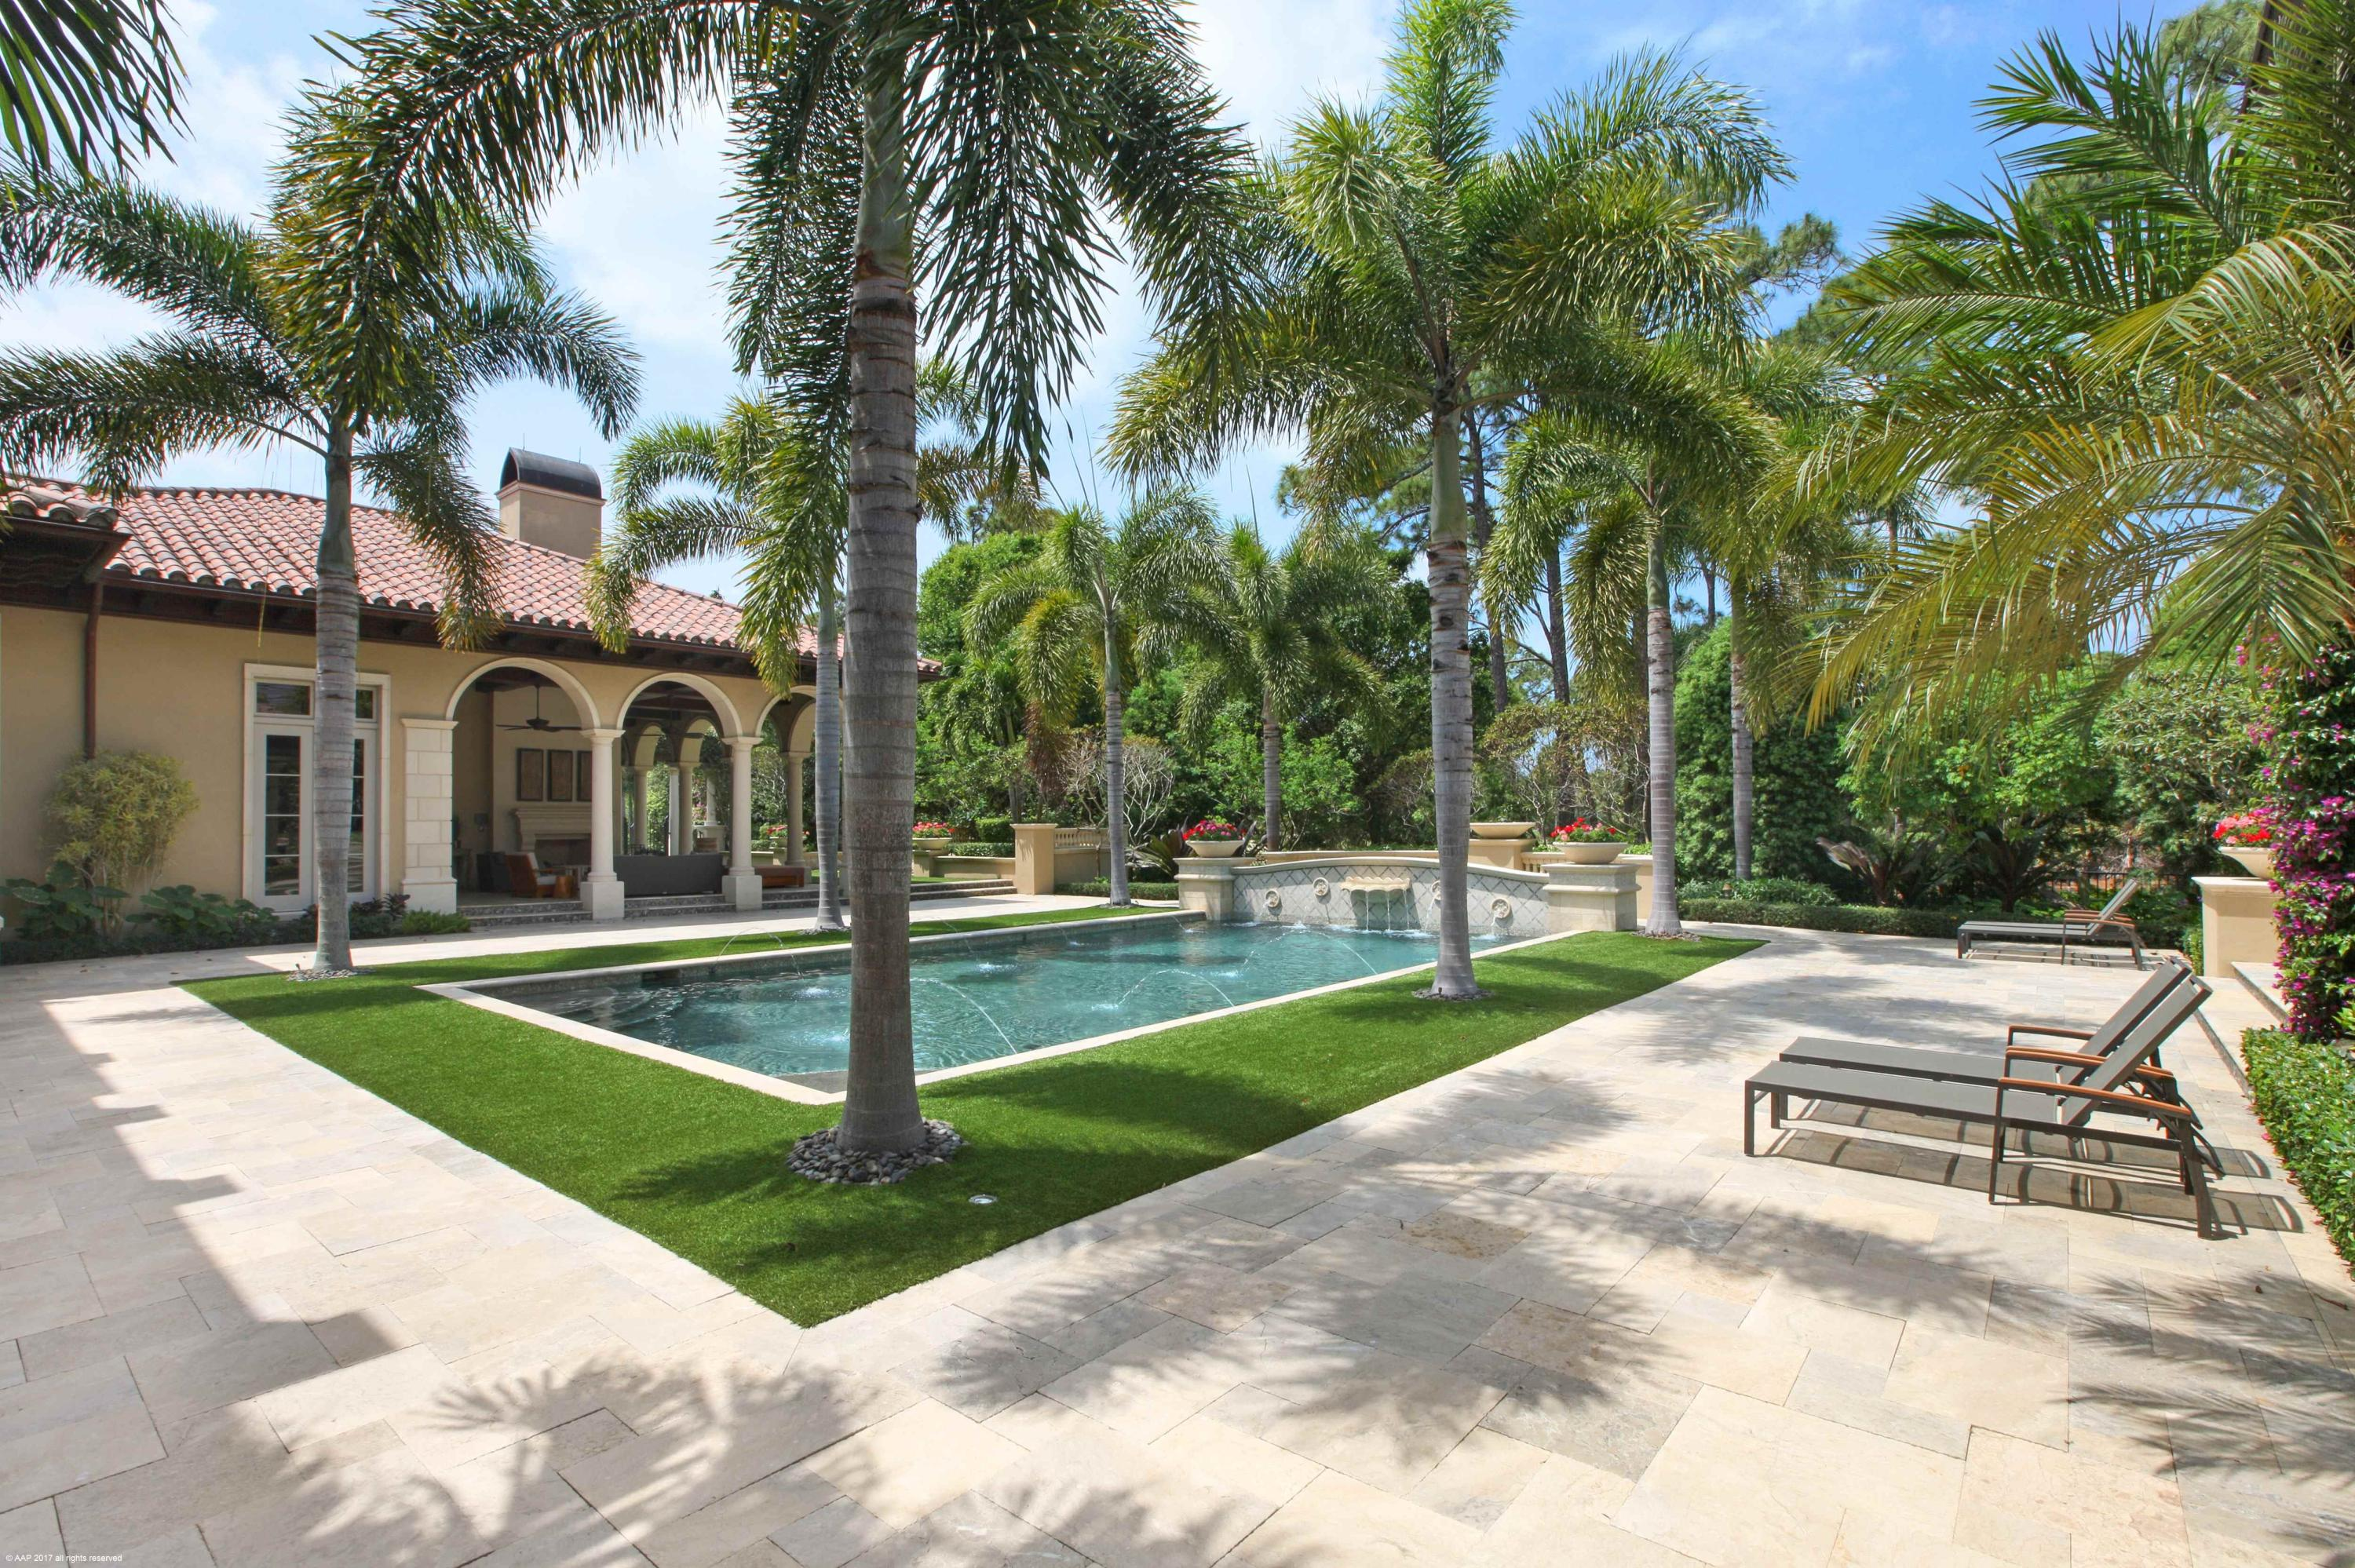 OLD PALM PALM BEACH GARDENS